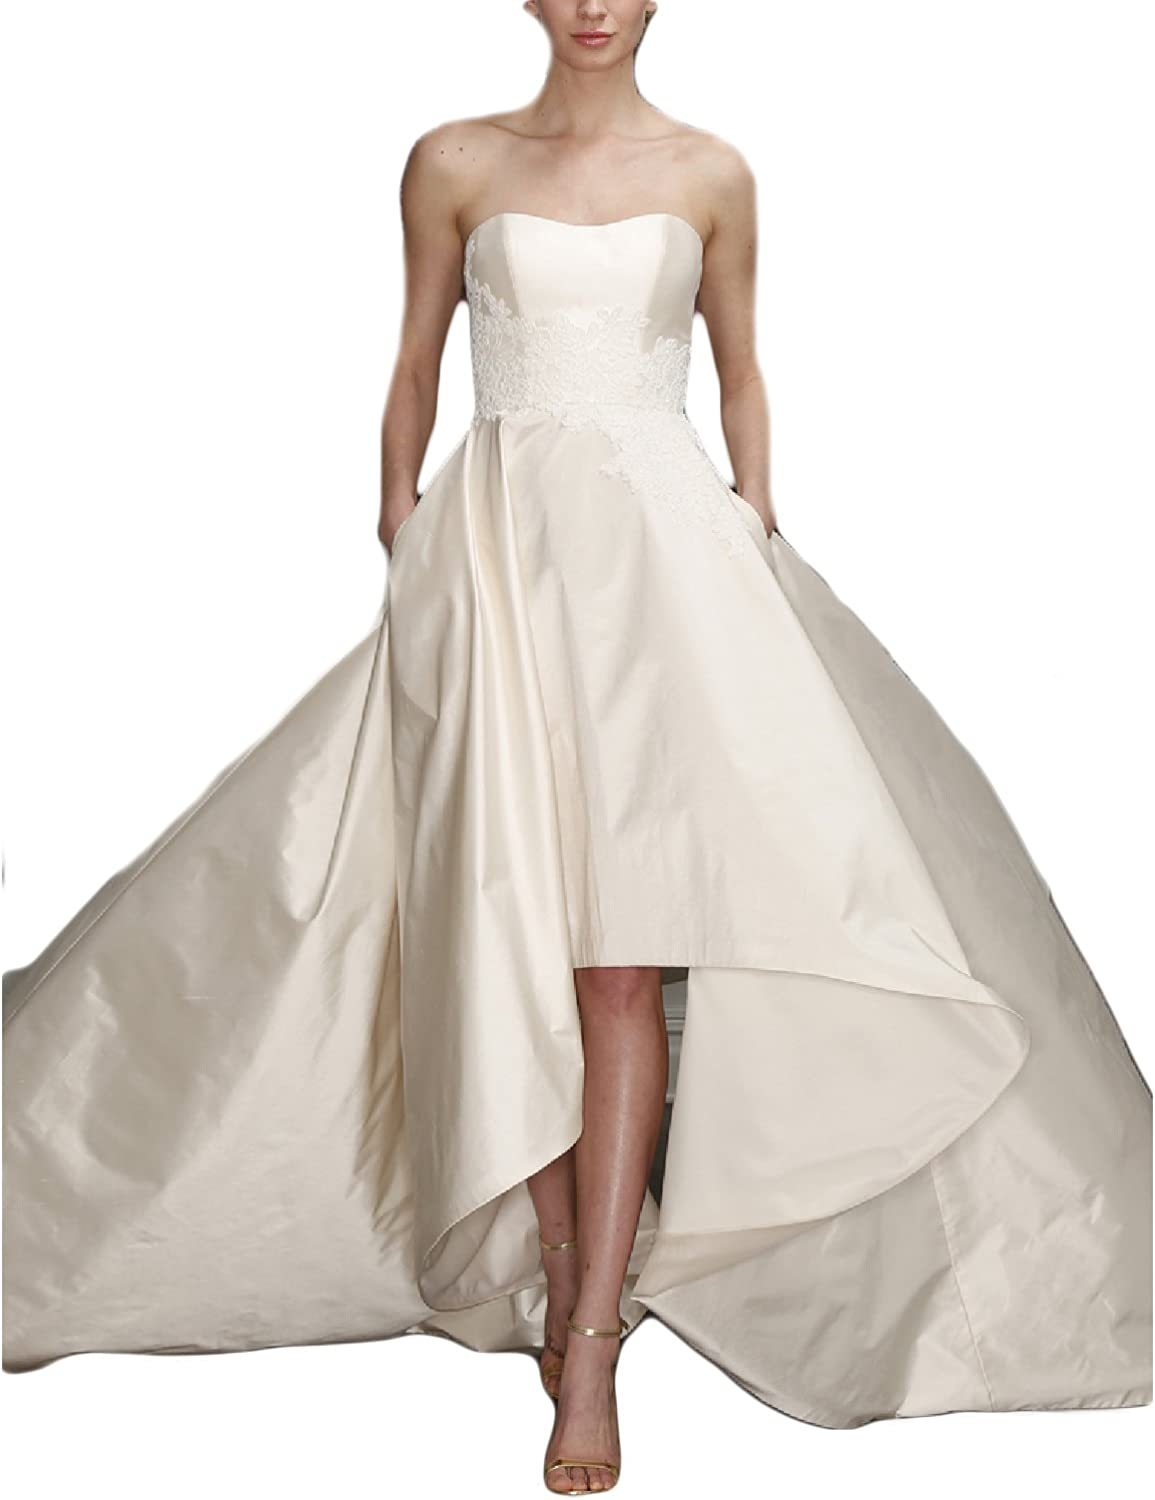 YSMei Women's Long Boateau Wedding Dress with Pockets Evening Prom Gown YWD071